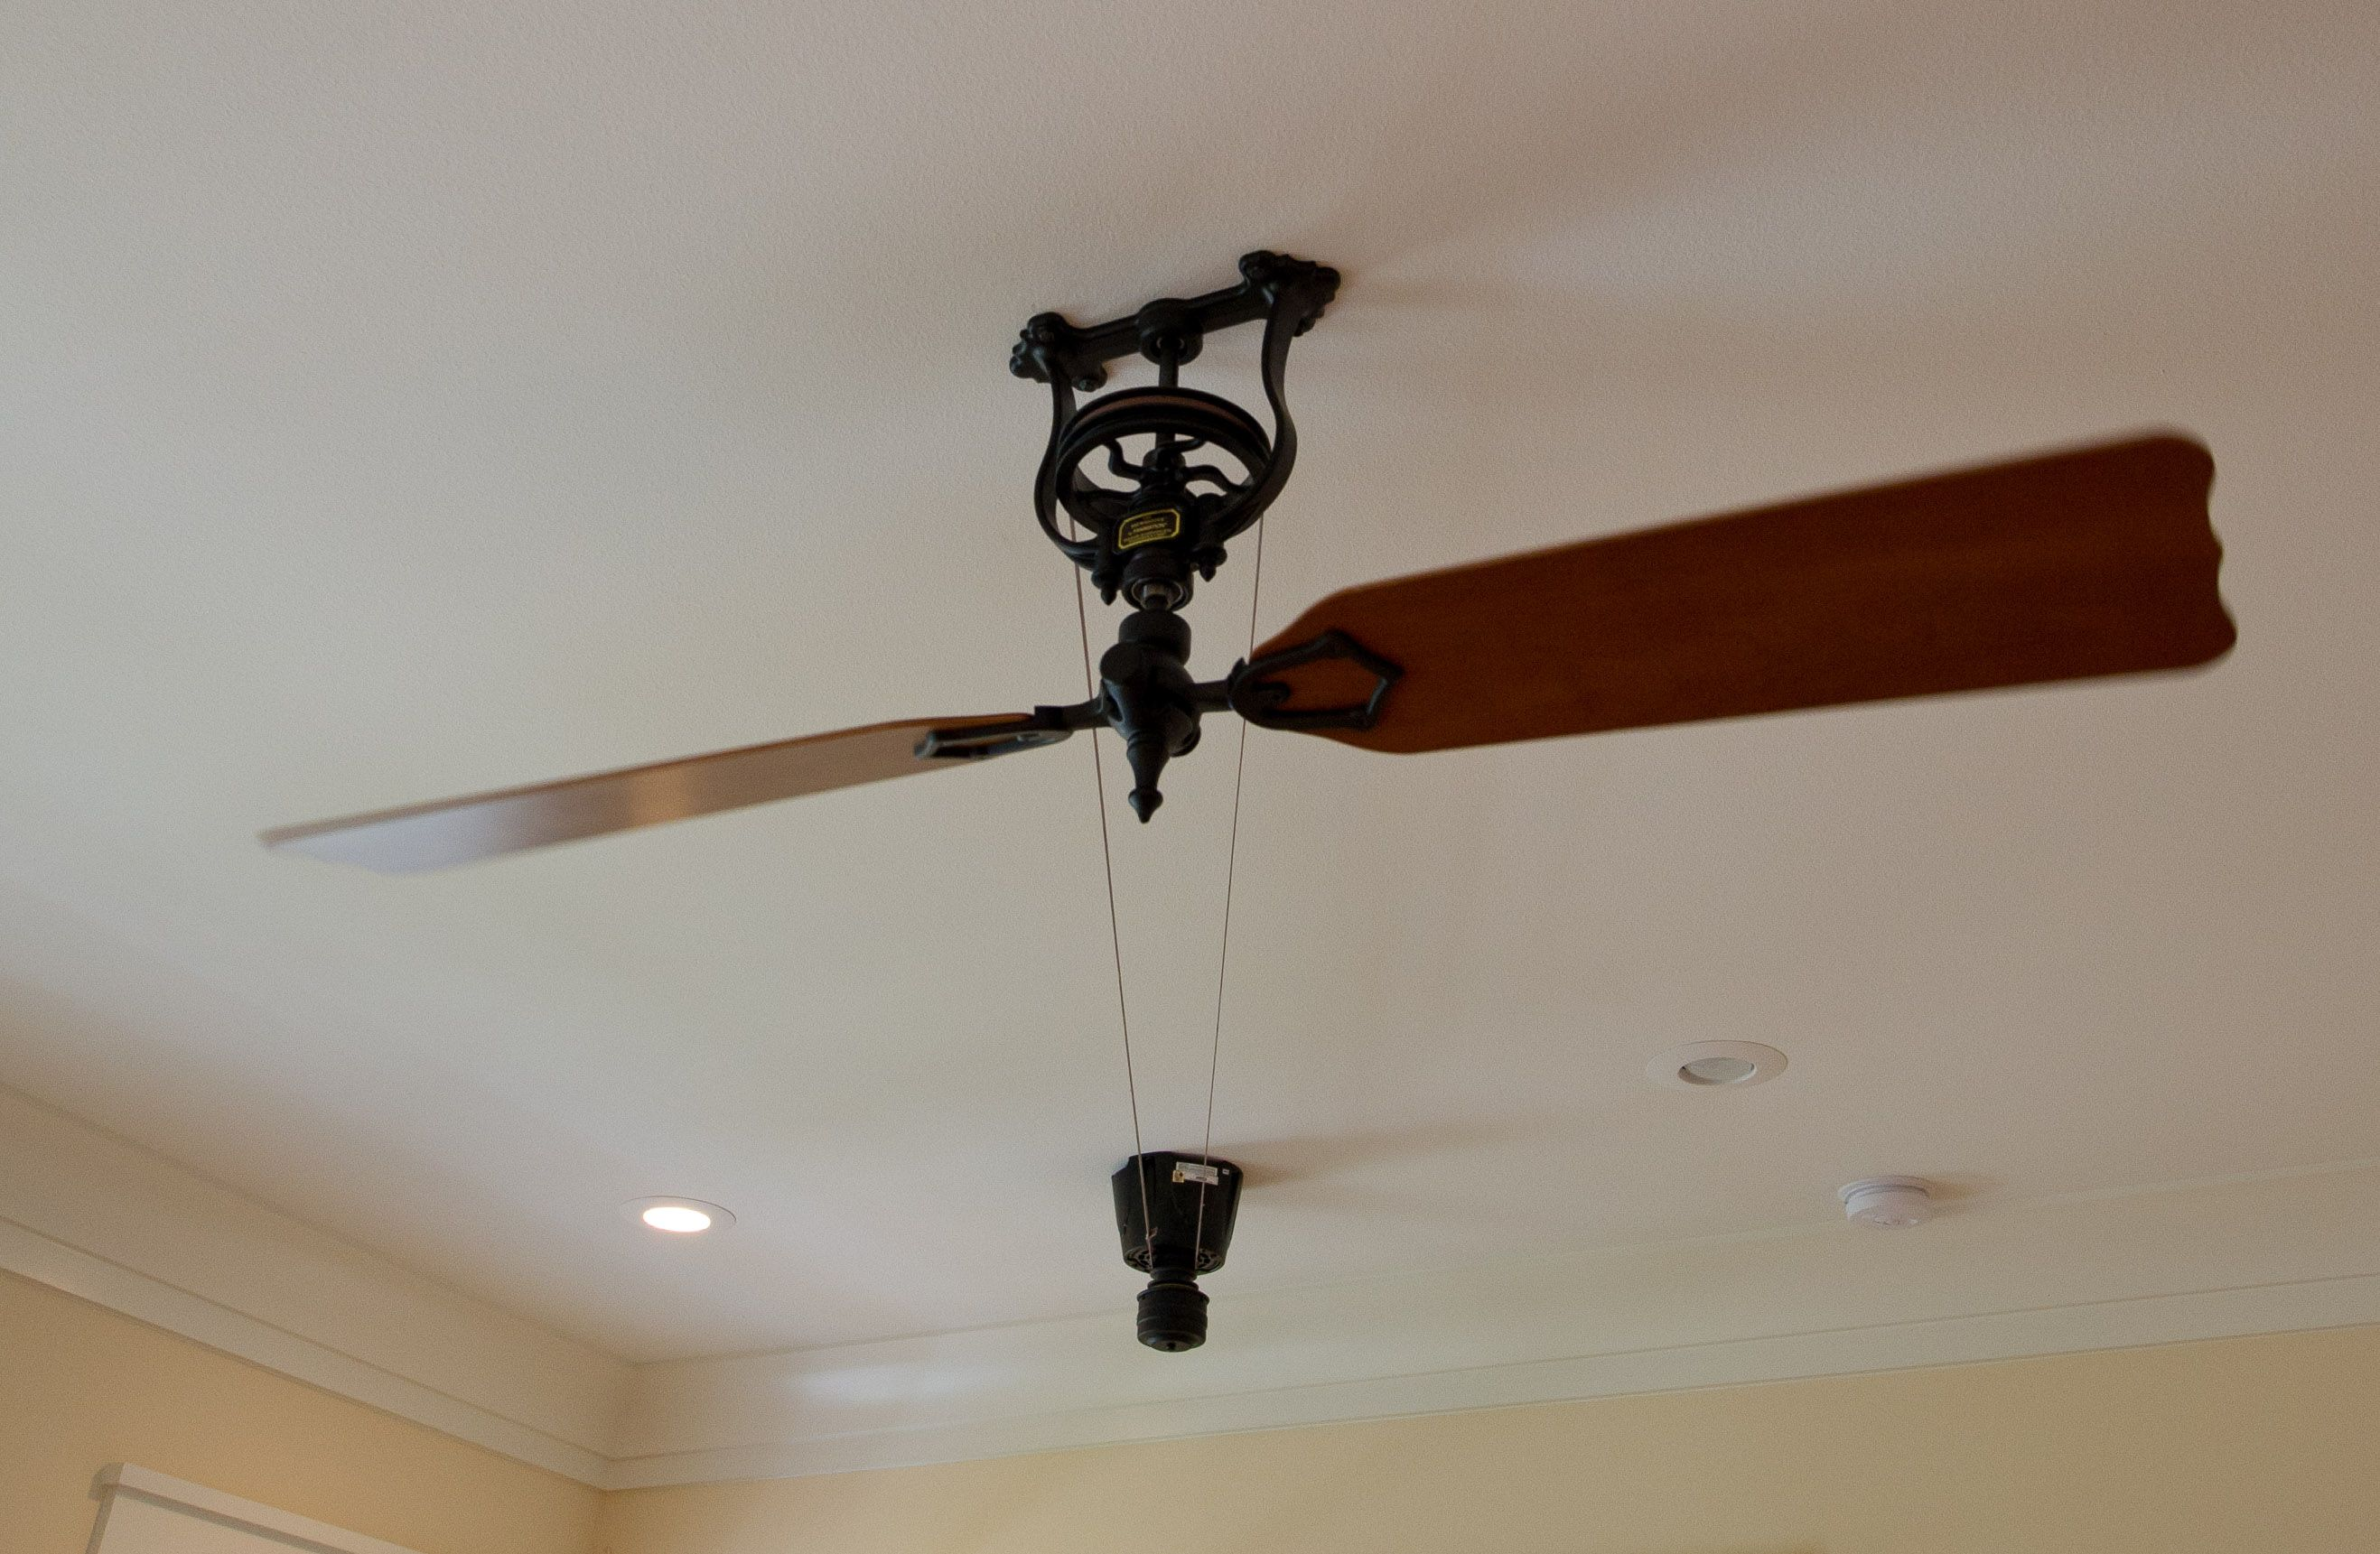 Vintage fan with motor and pulley belt lighting and fans vintage fan with motor and pulley belt mozeypictures Images